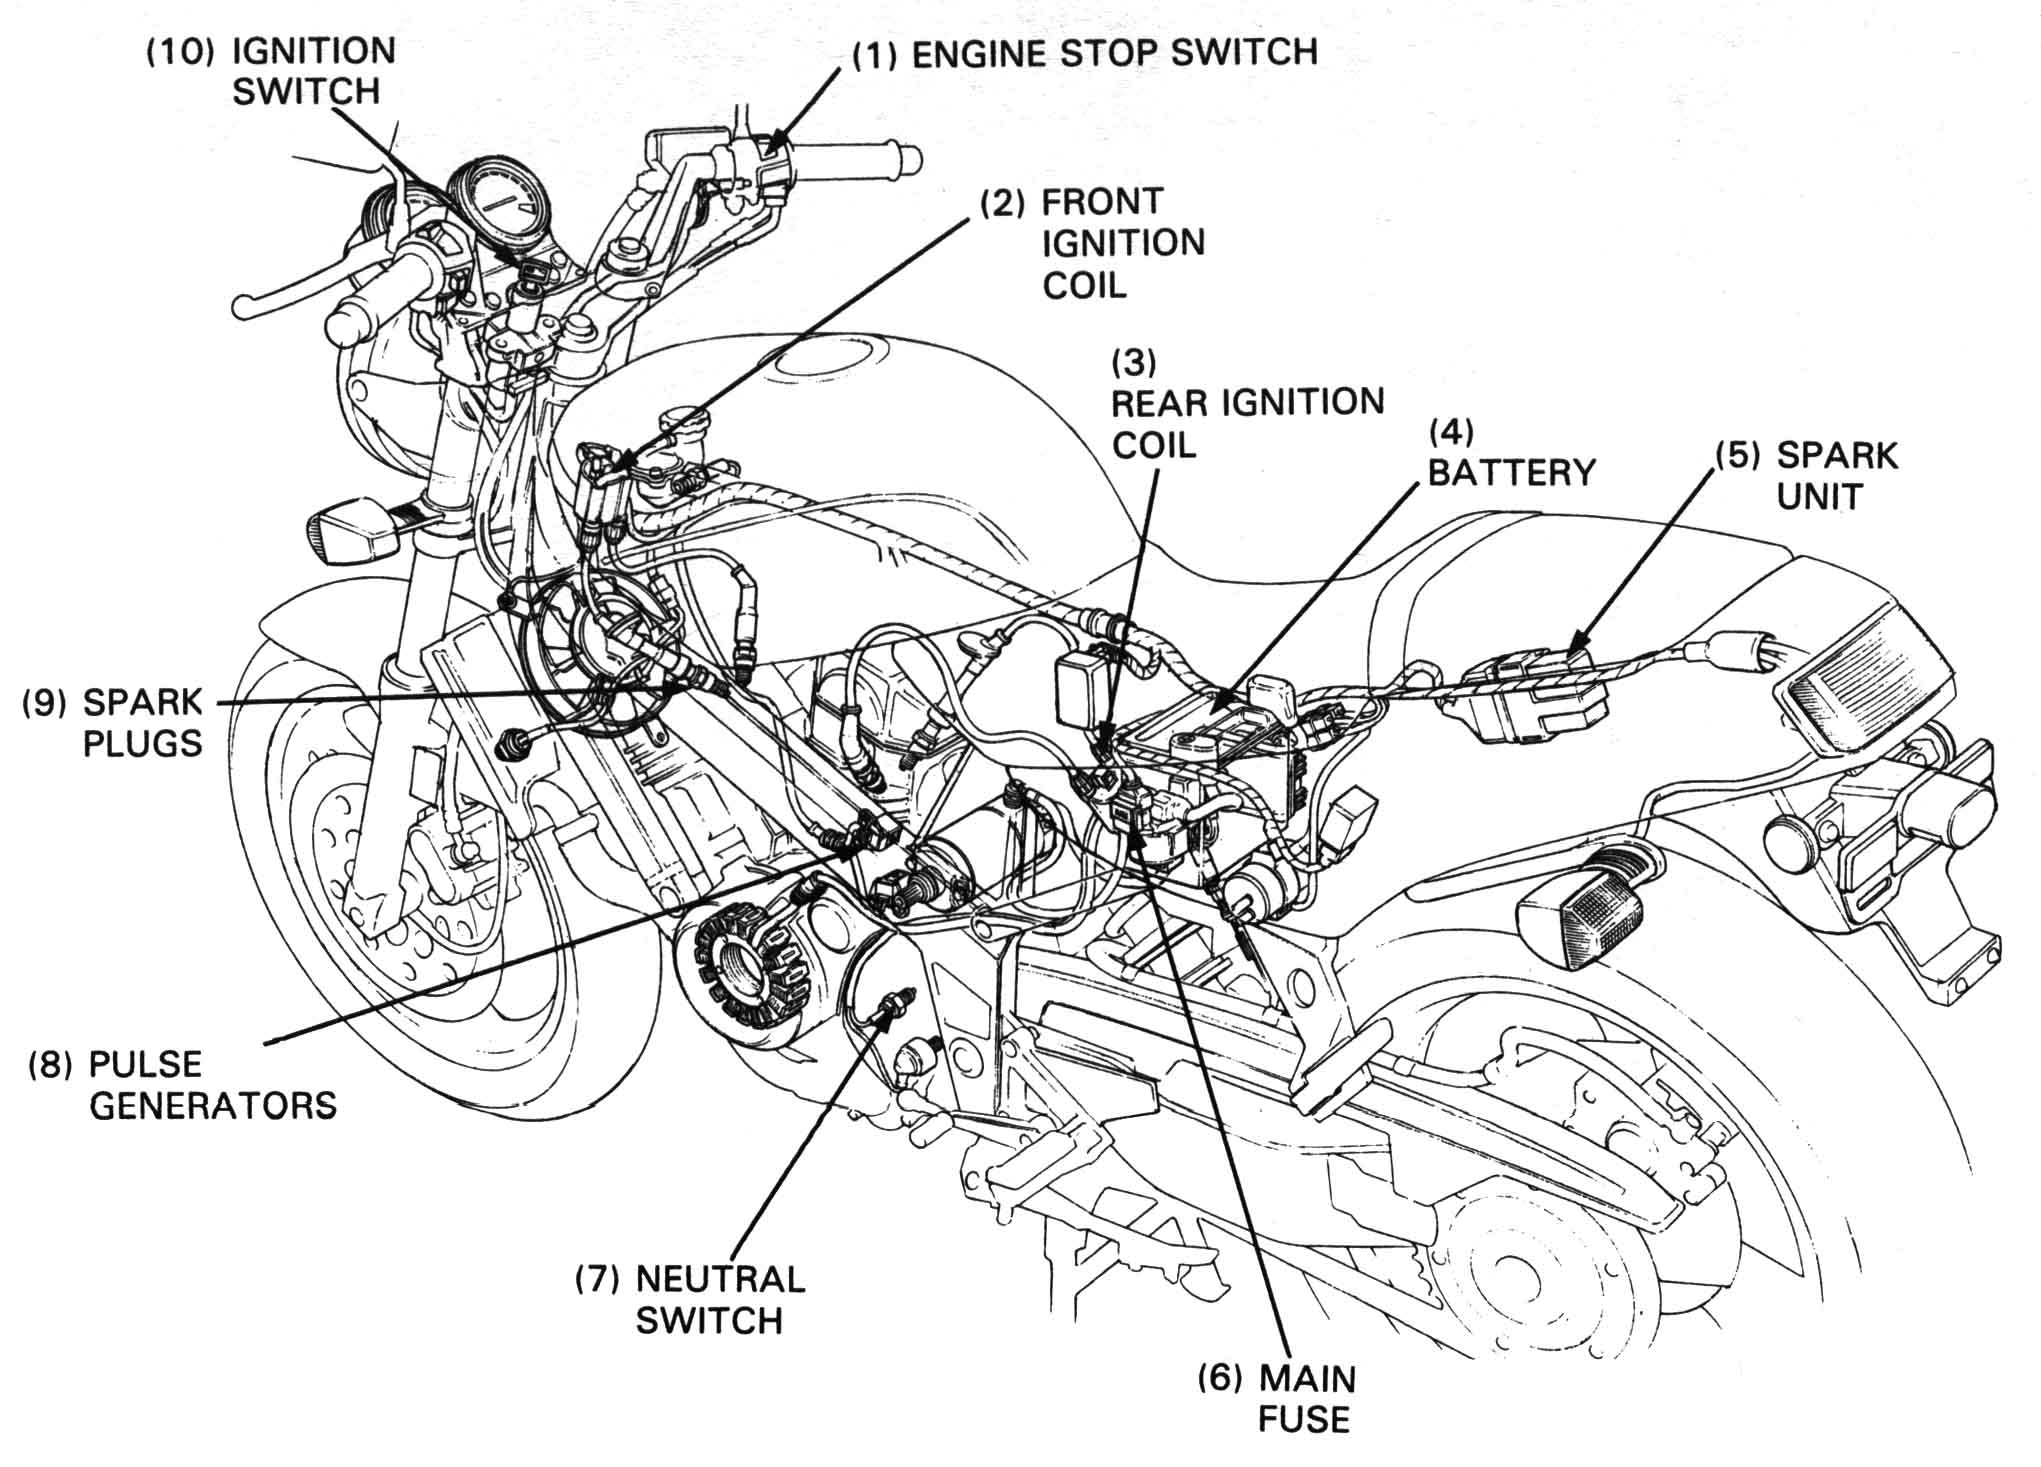 Honda Nt650 Service Manual Section 16 Ignition System Wiring Diagram Coil Really Big Verson